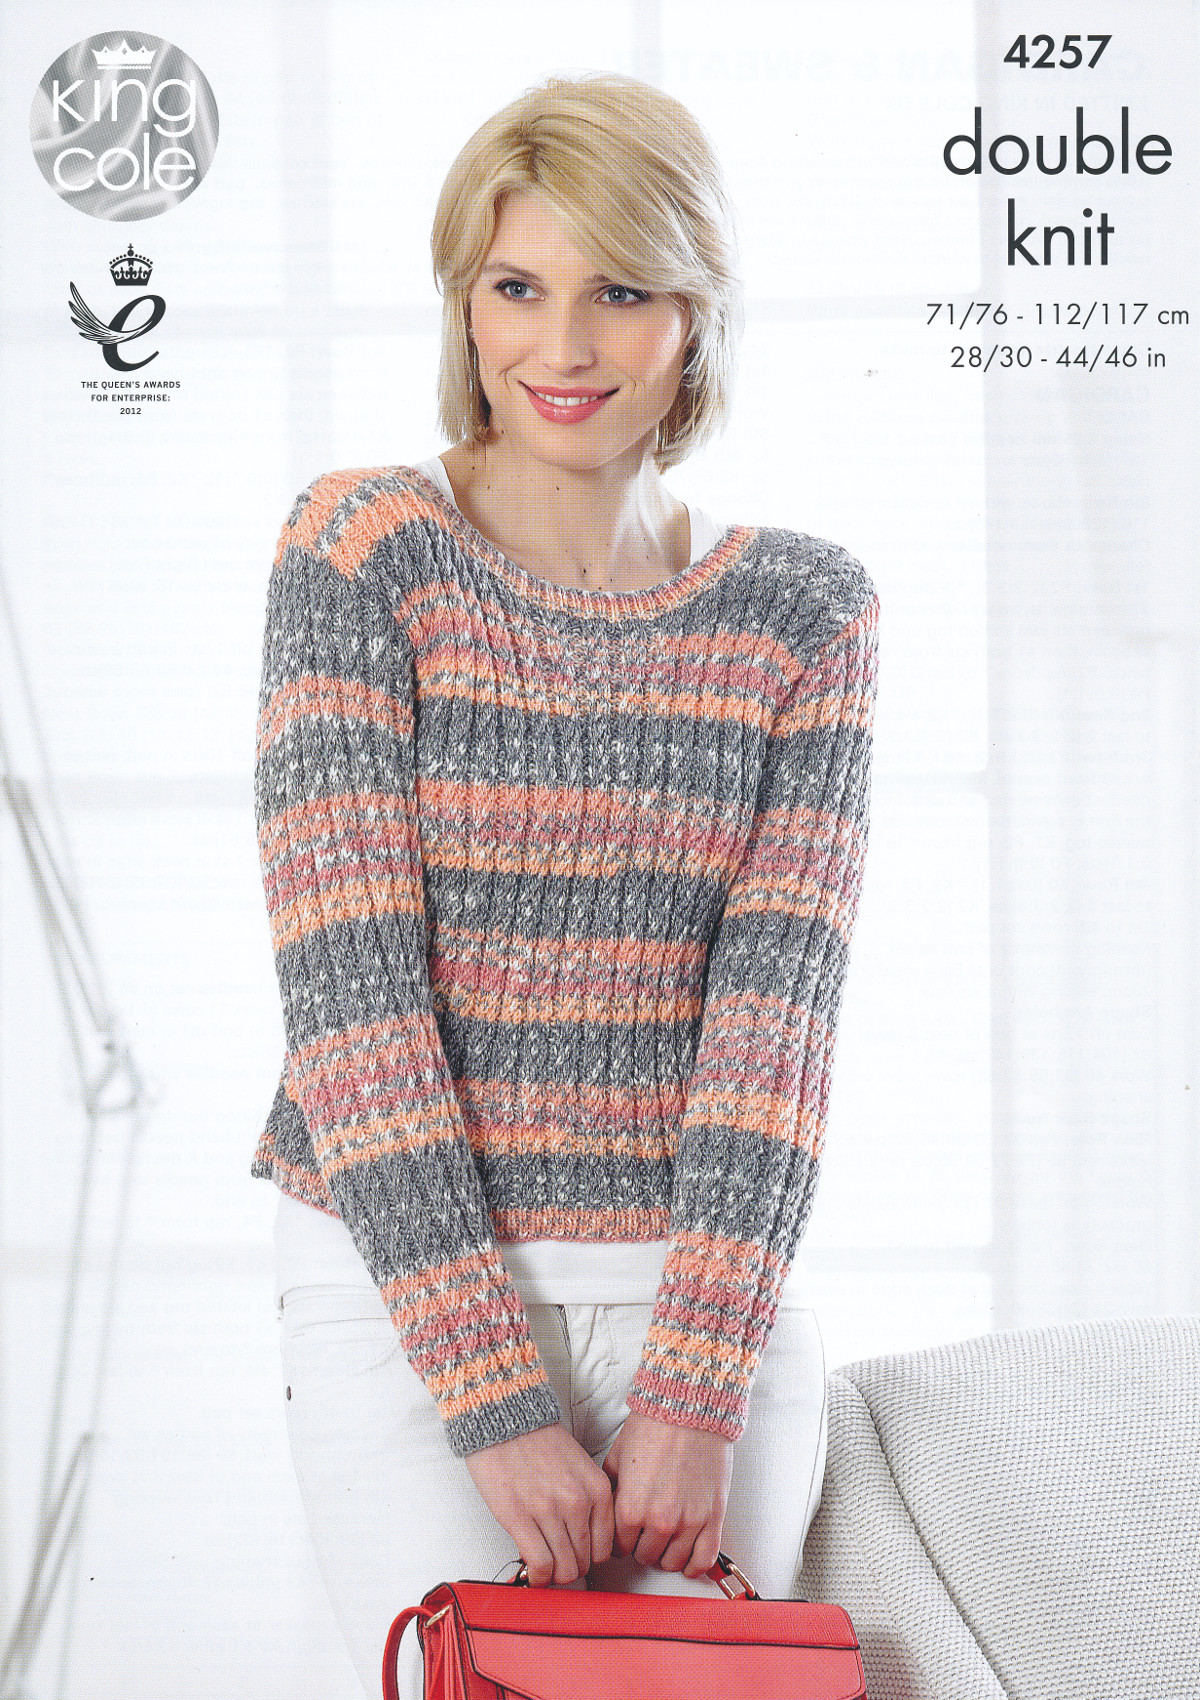 Knitting Patterns Ladies Jumpers Double Knit : Womens Double Knitting Pattern King Cole Ladies DK Sweater Jumper Cardigan 42...